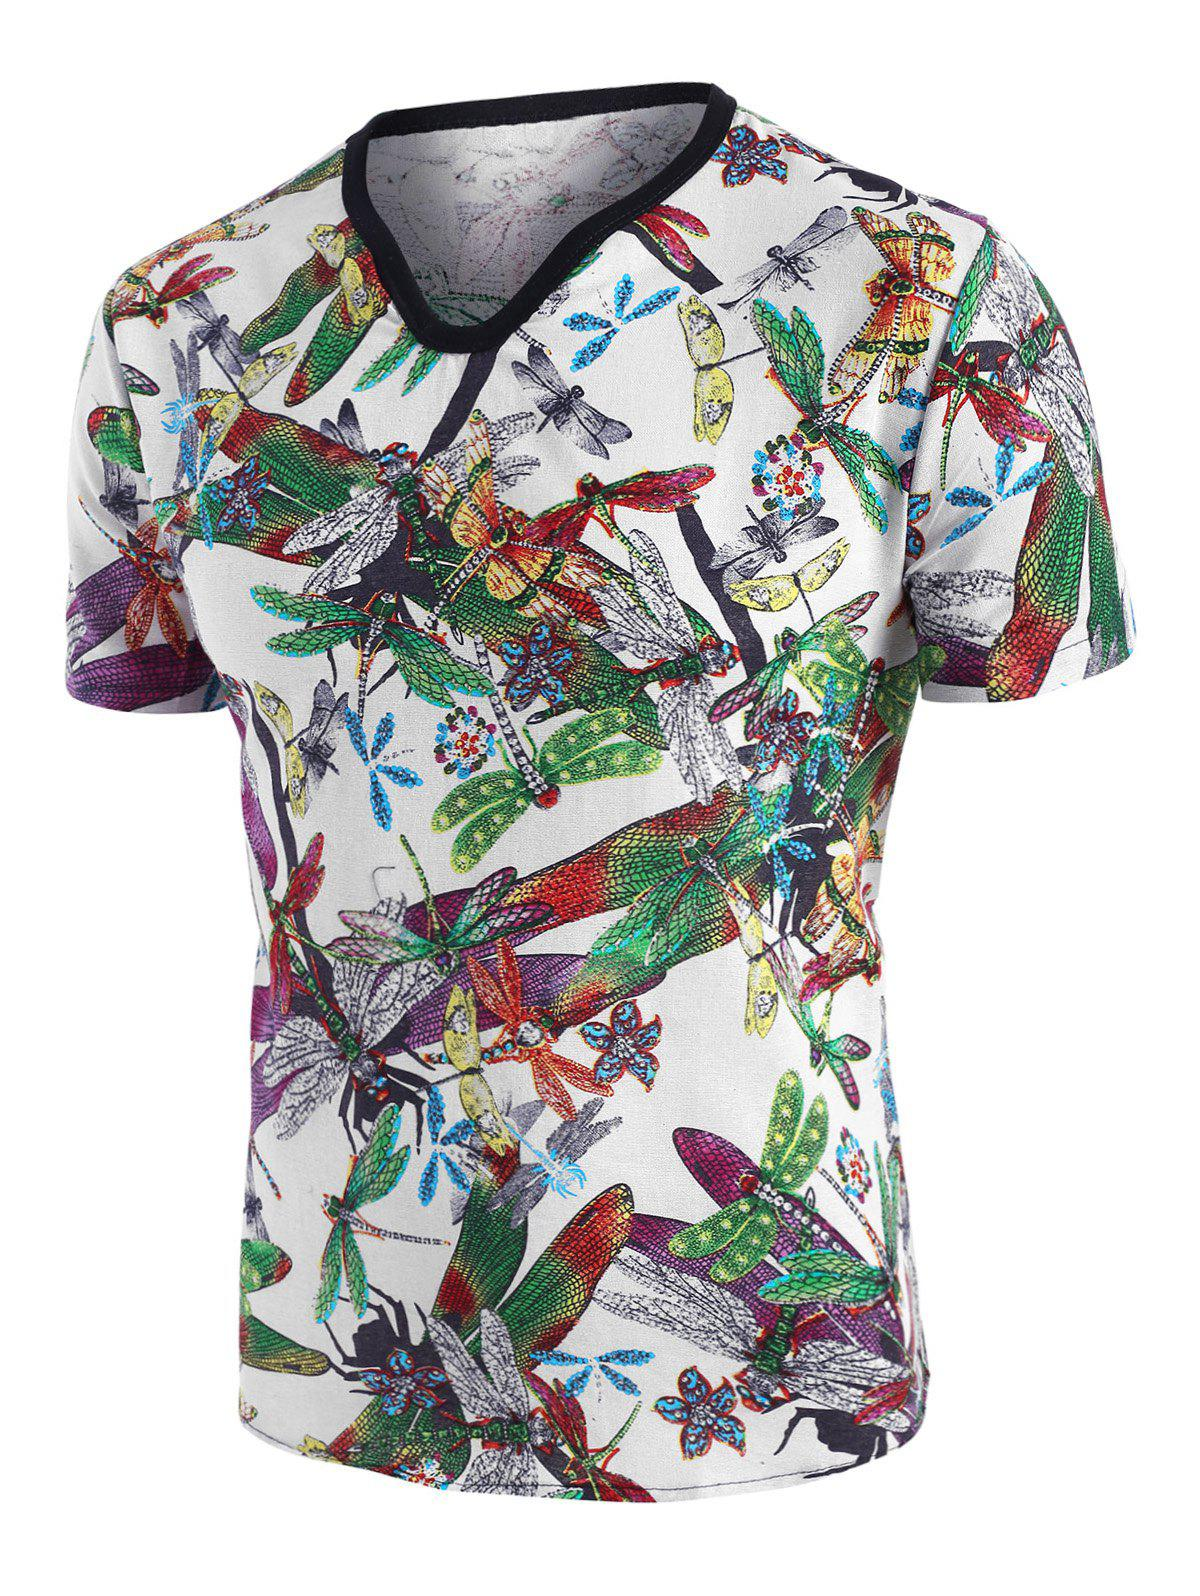 Dragonfly Print Ethnic Short Sleeve T Shirt - multicolor 2XL